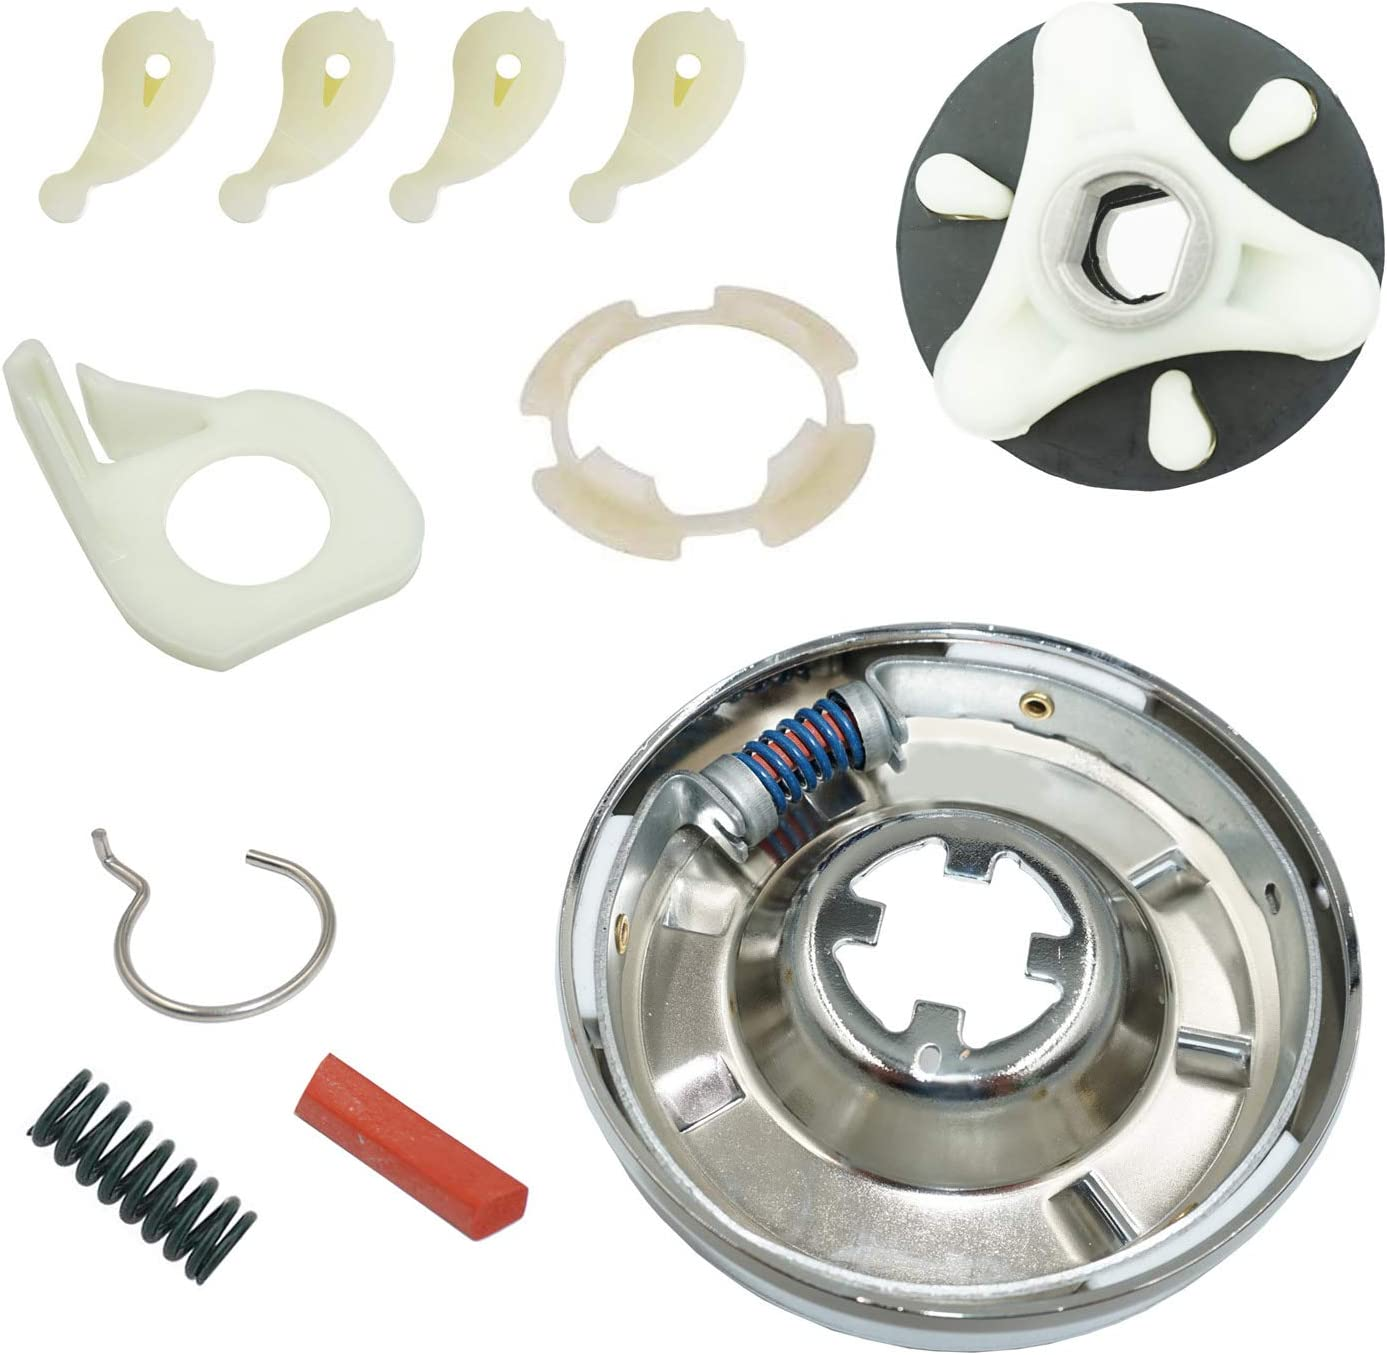 Ecumfy 285785 Washer Clutch Kit, 285753A Washer Motor Coupler Kit and 4 Pieces 80040 Washer Agitator Dog Compatible with Whirlpool Washer